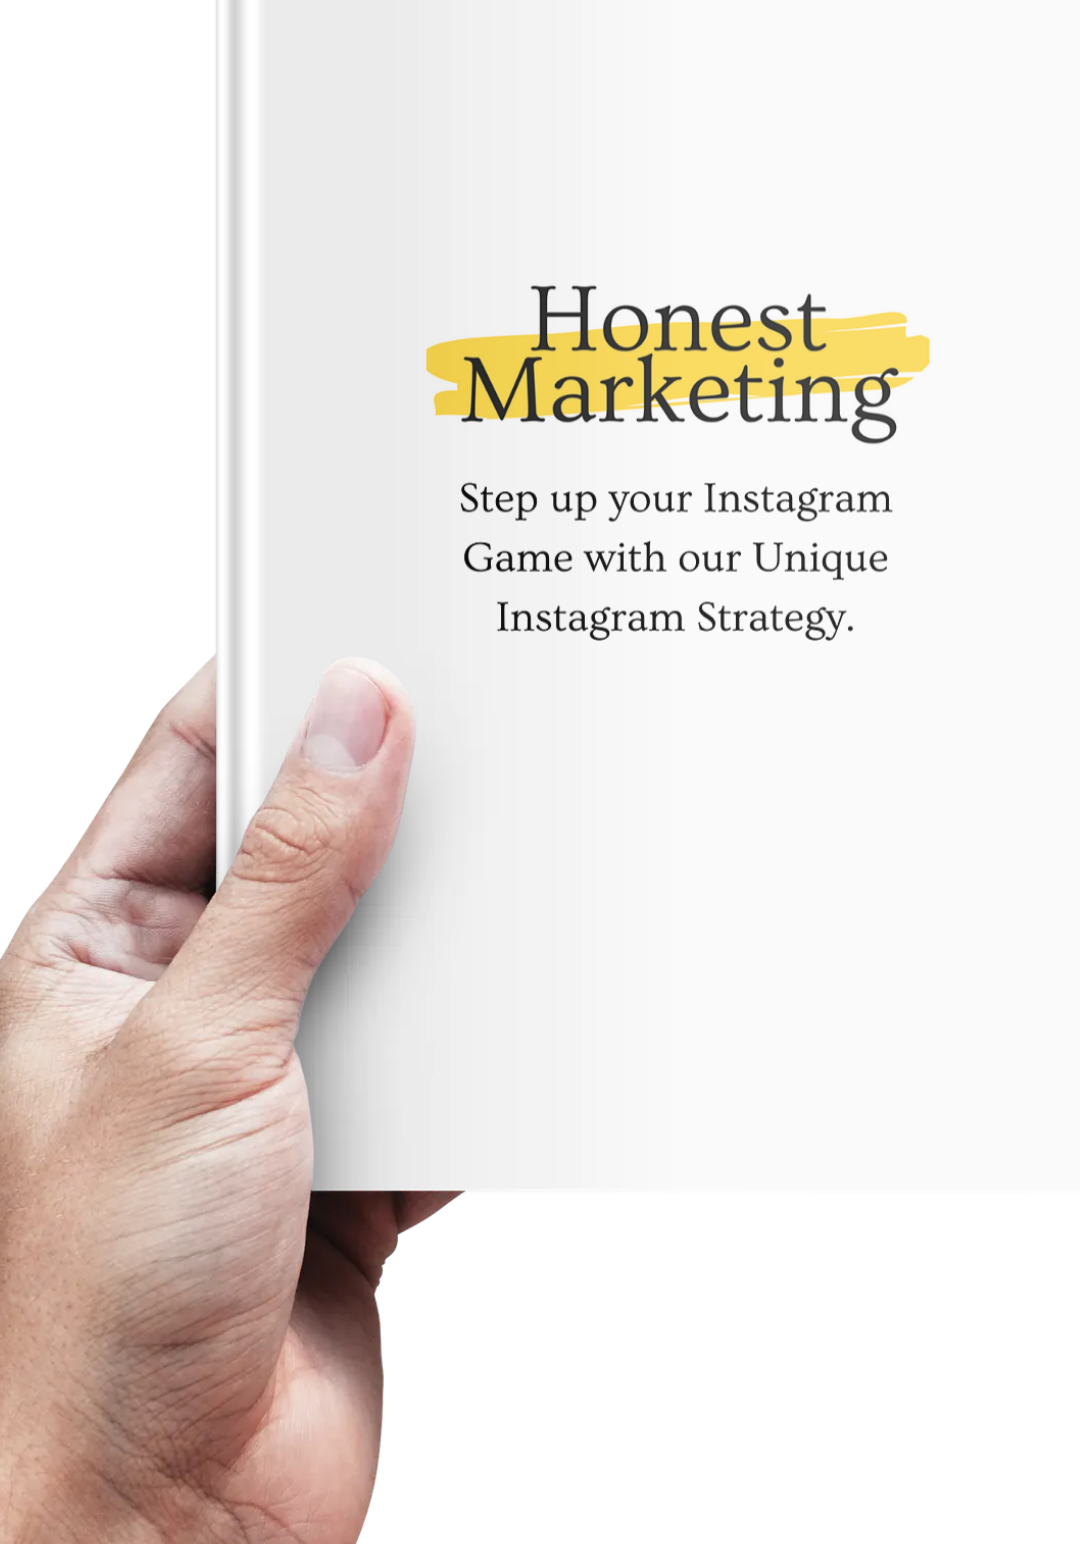 Step up your Instagram Game with our Unique Instagram Strategy. (1)